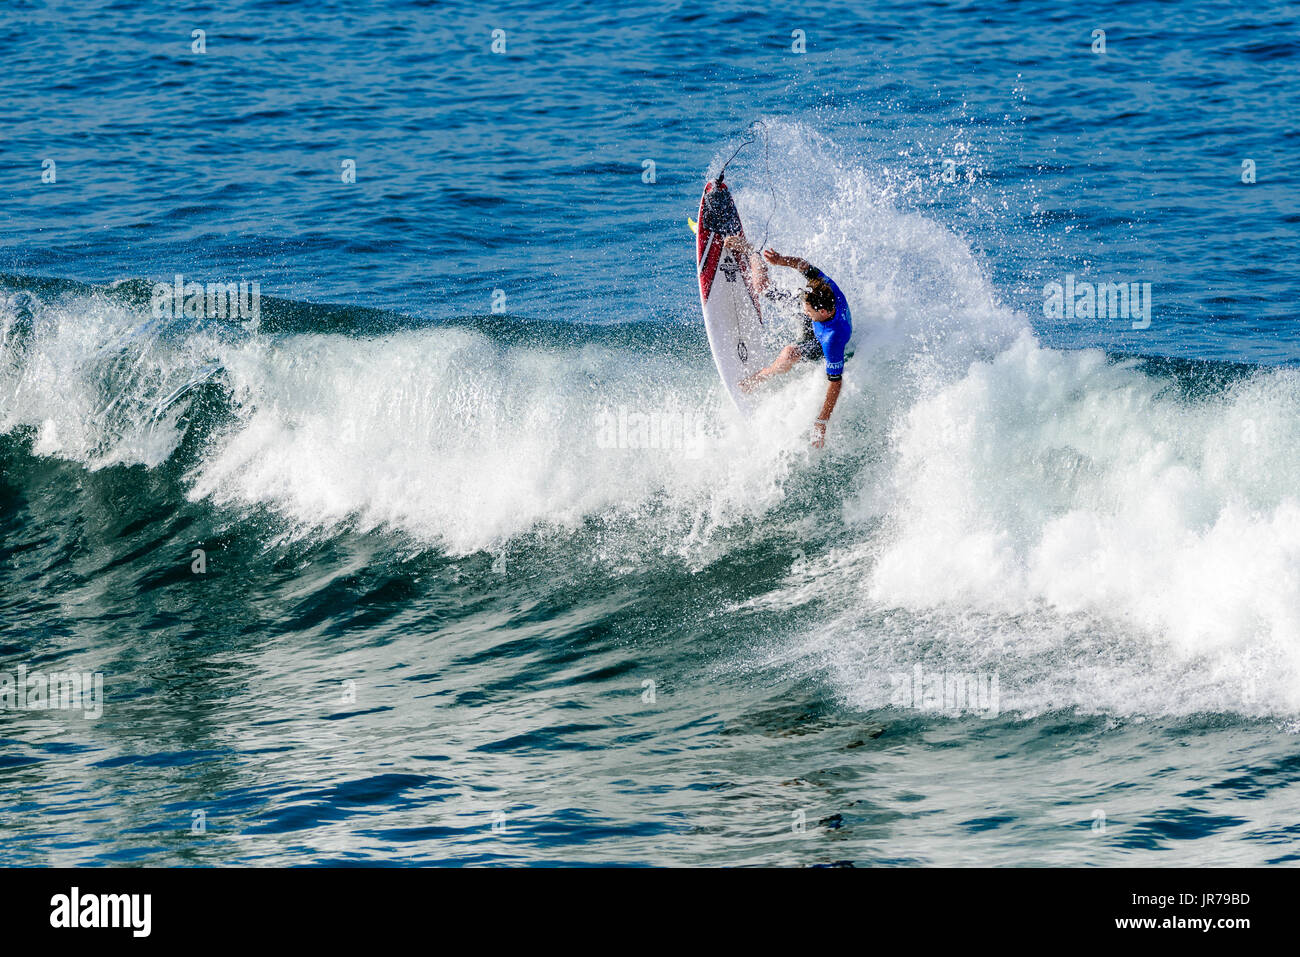 Huntington Beach, USA. 03 August, 2017. Local hero and two-time event winner Brett Simpson (USA) airs over a closeout section at the 2017 VANS US Open of Surfing. Credit: Benjamin Ginsberg/Alamy Live News. - Stock Image